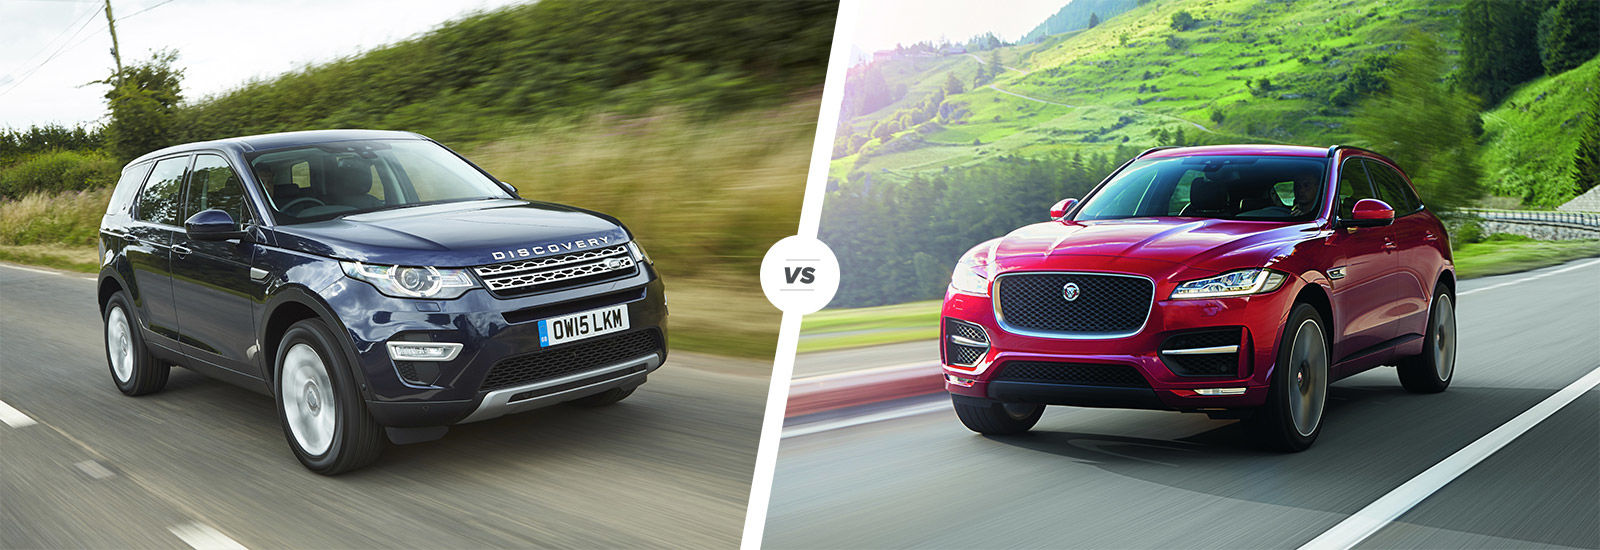 Land Rover Discovery Sport Vs Jaguar F Pace Carwow